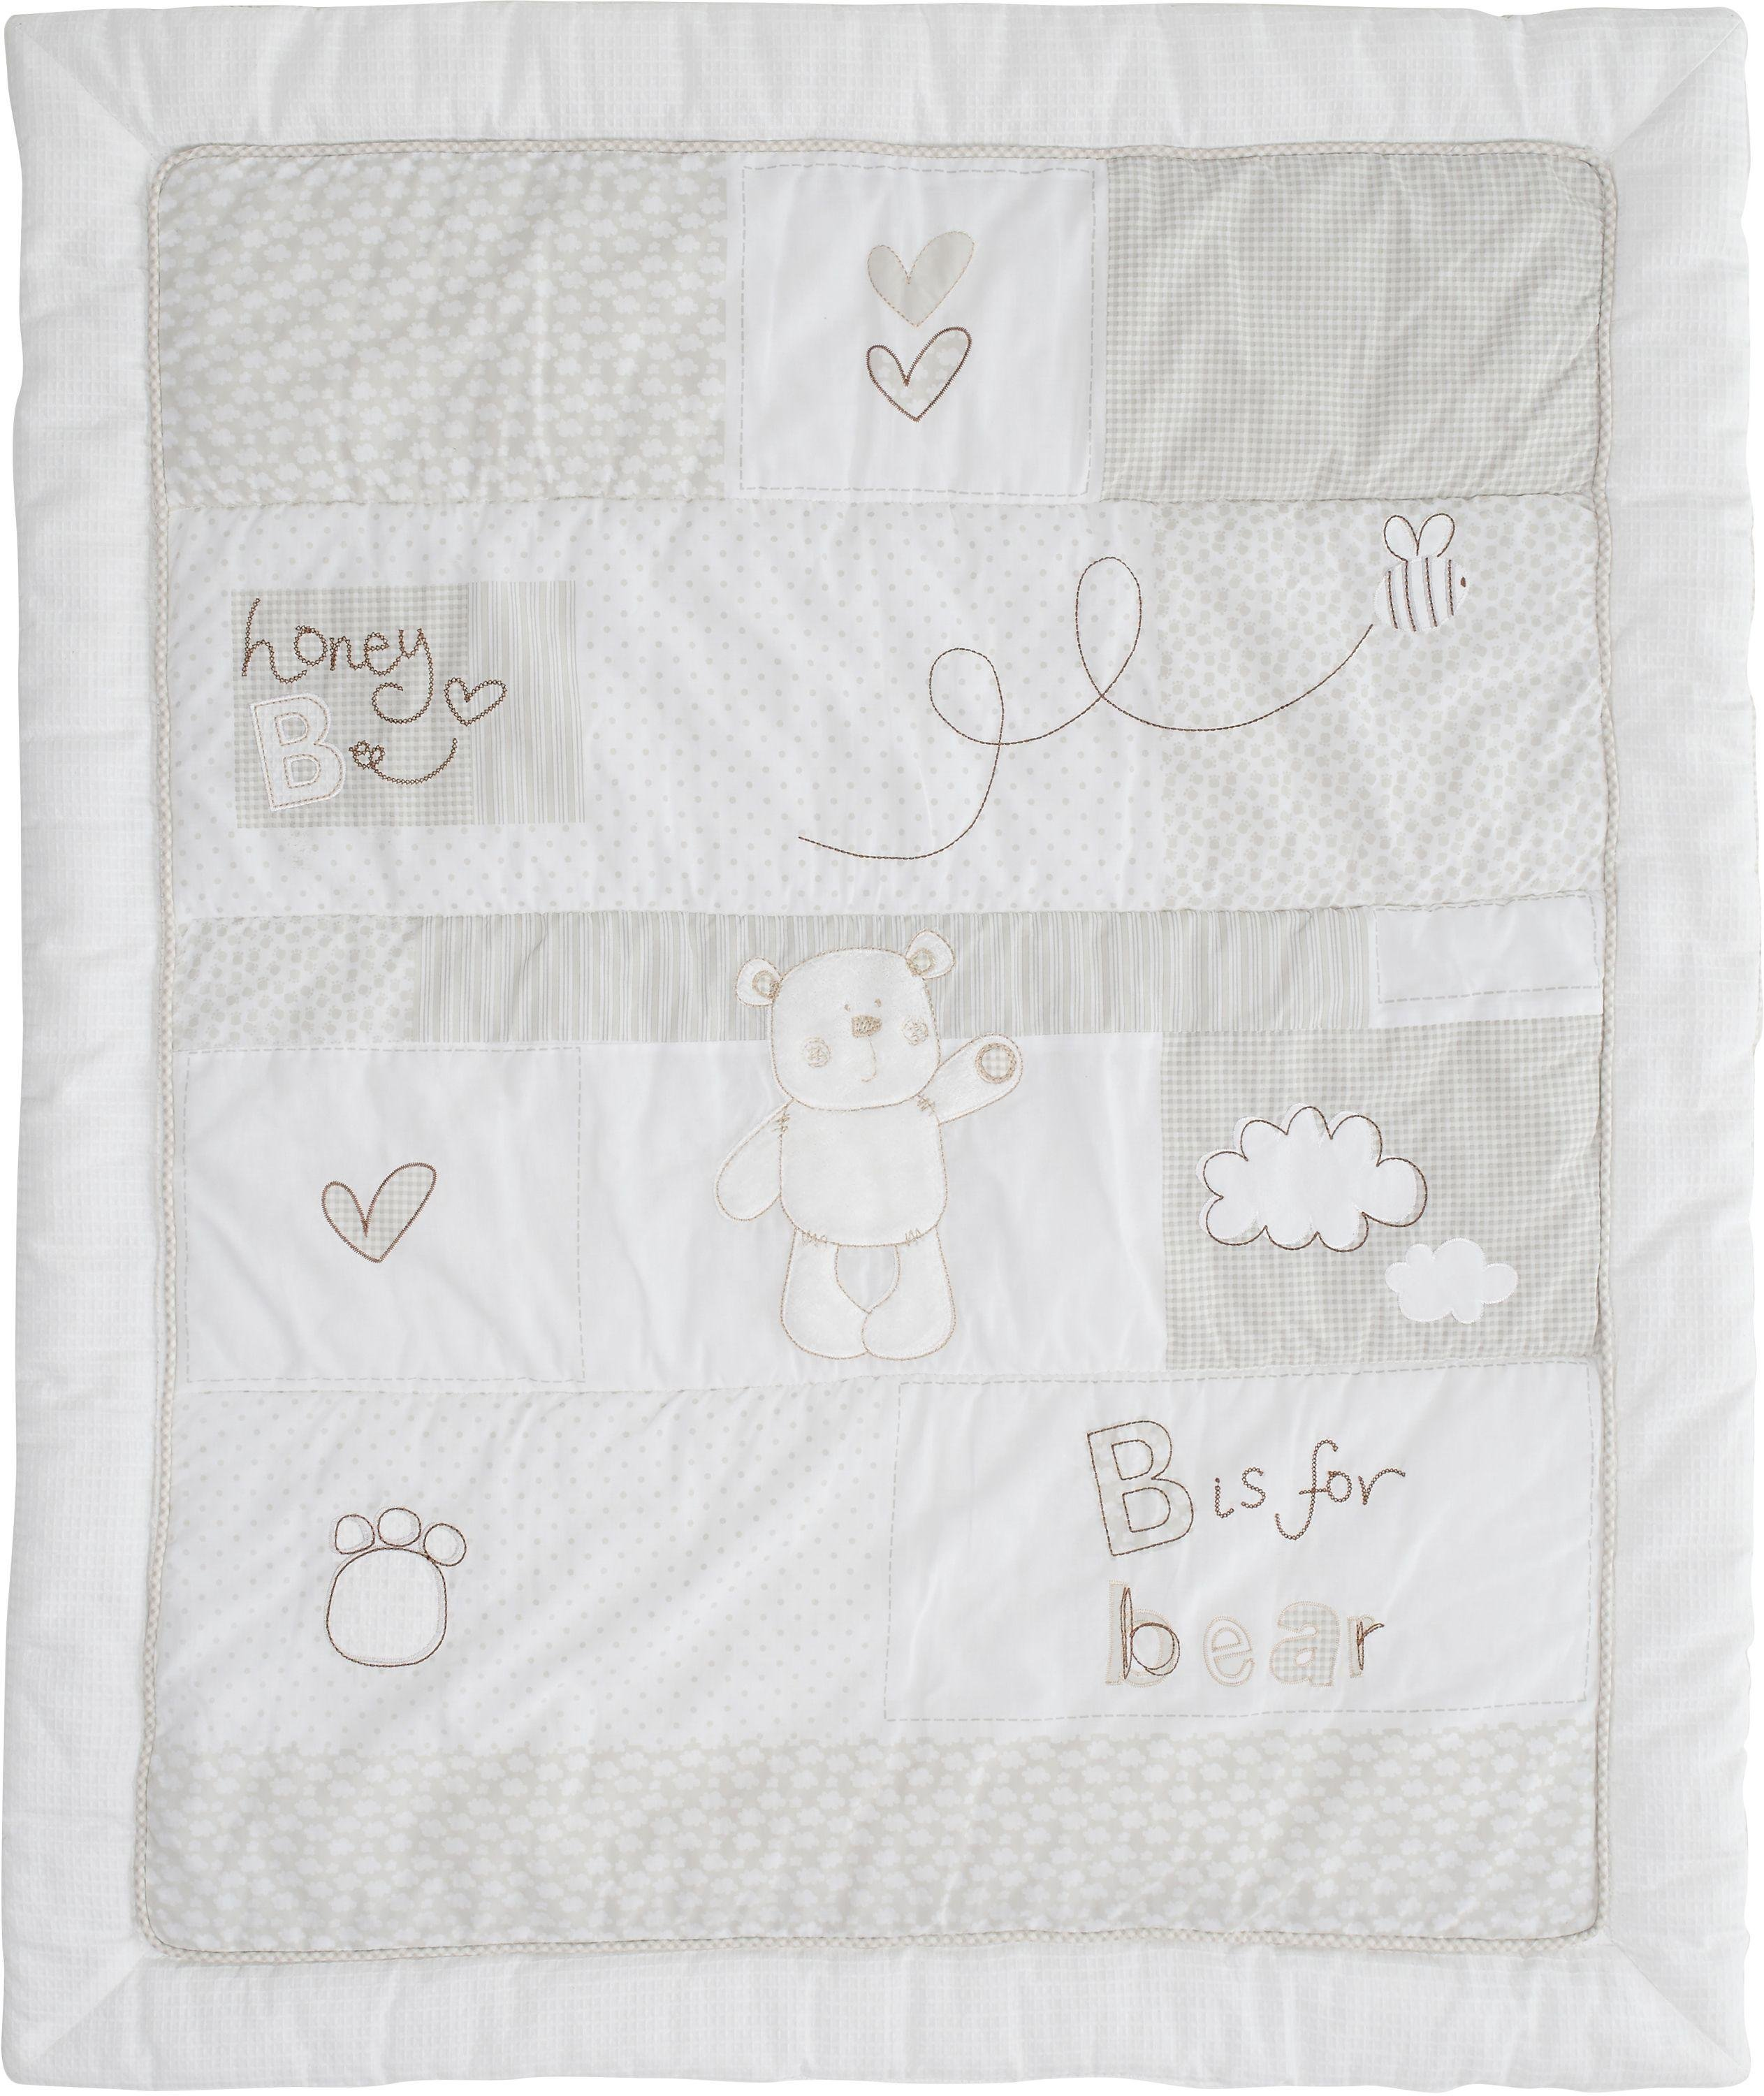 obaby b is for bear quilt and bumper set  white.